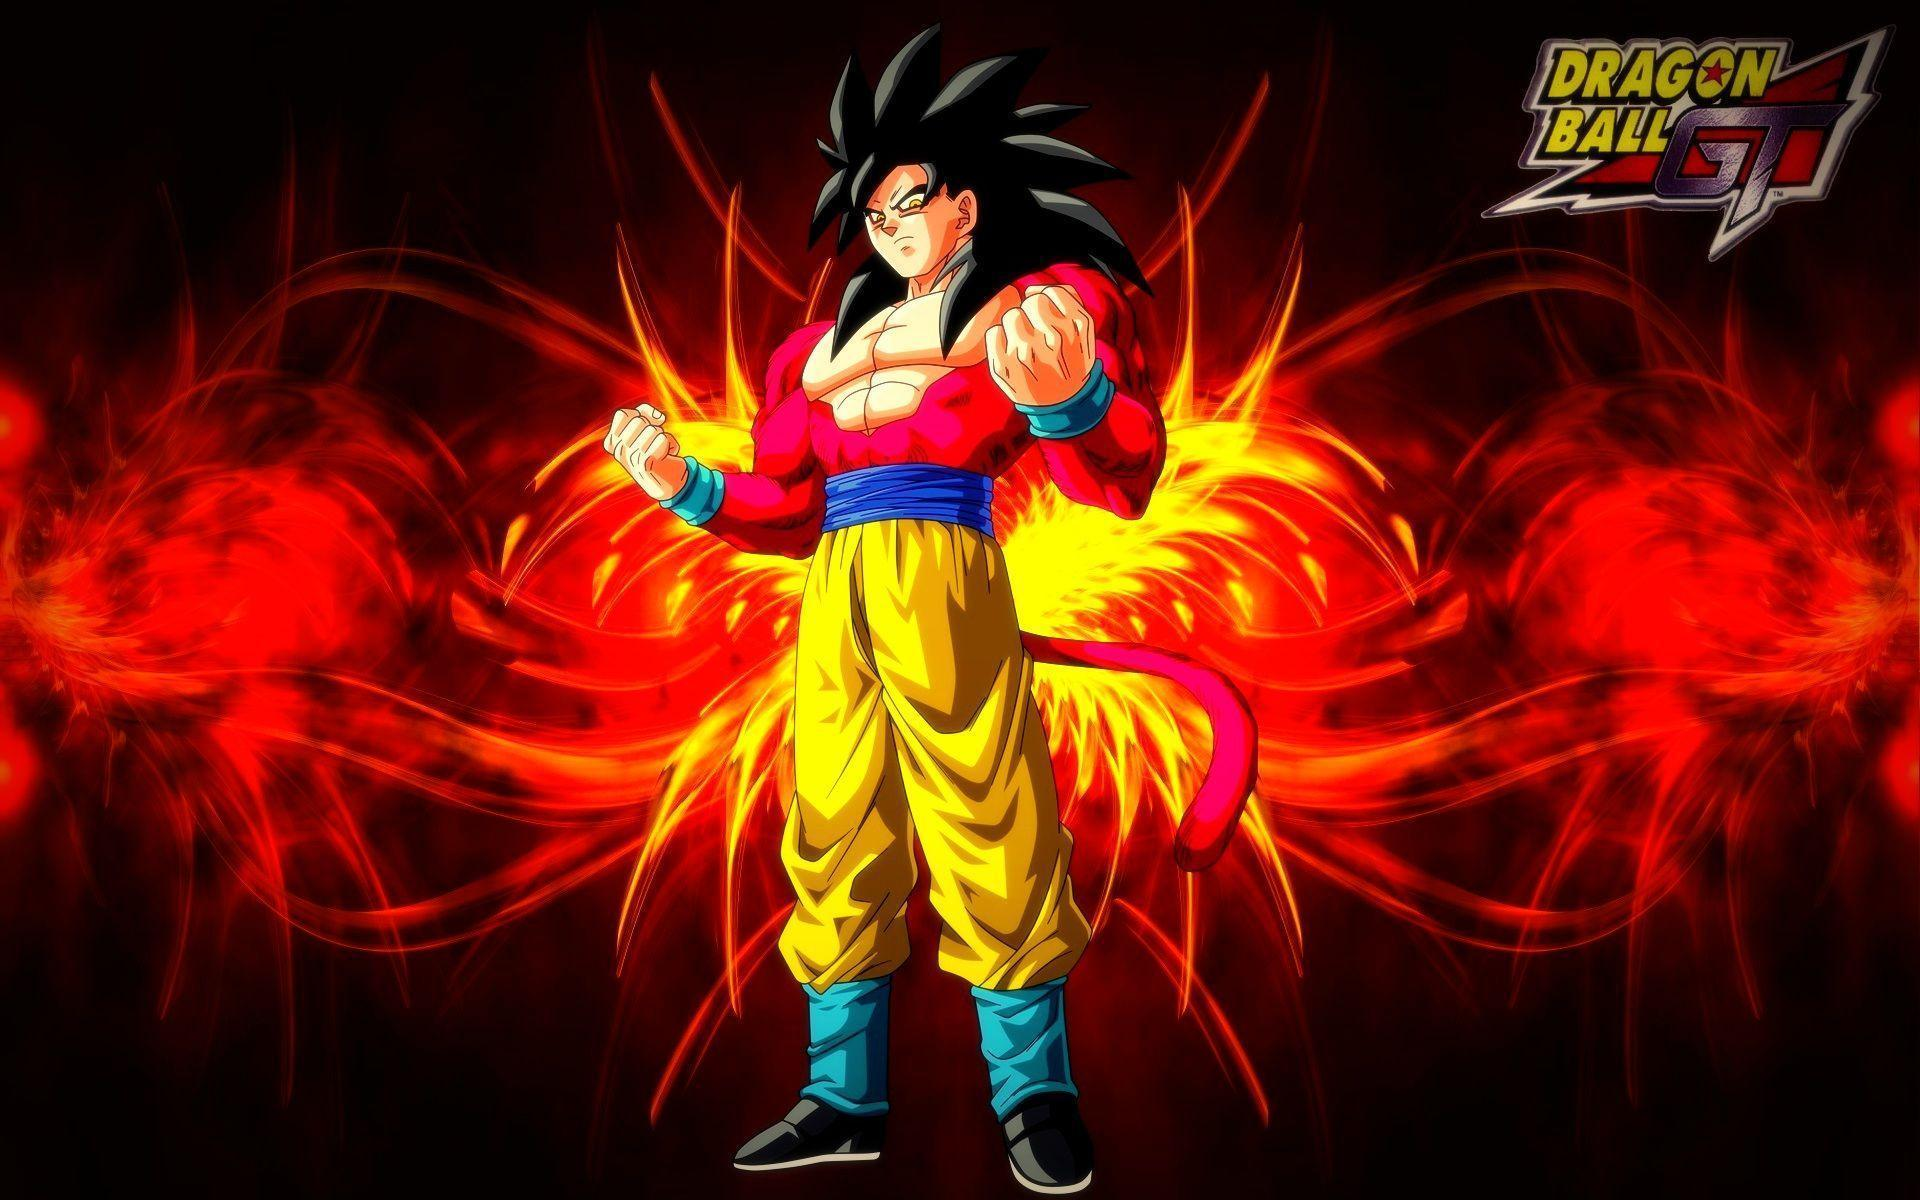 Anime Wallpaper: Dragon Ball Z Wallpapers Goku Super Saiyan God